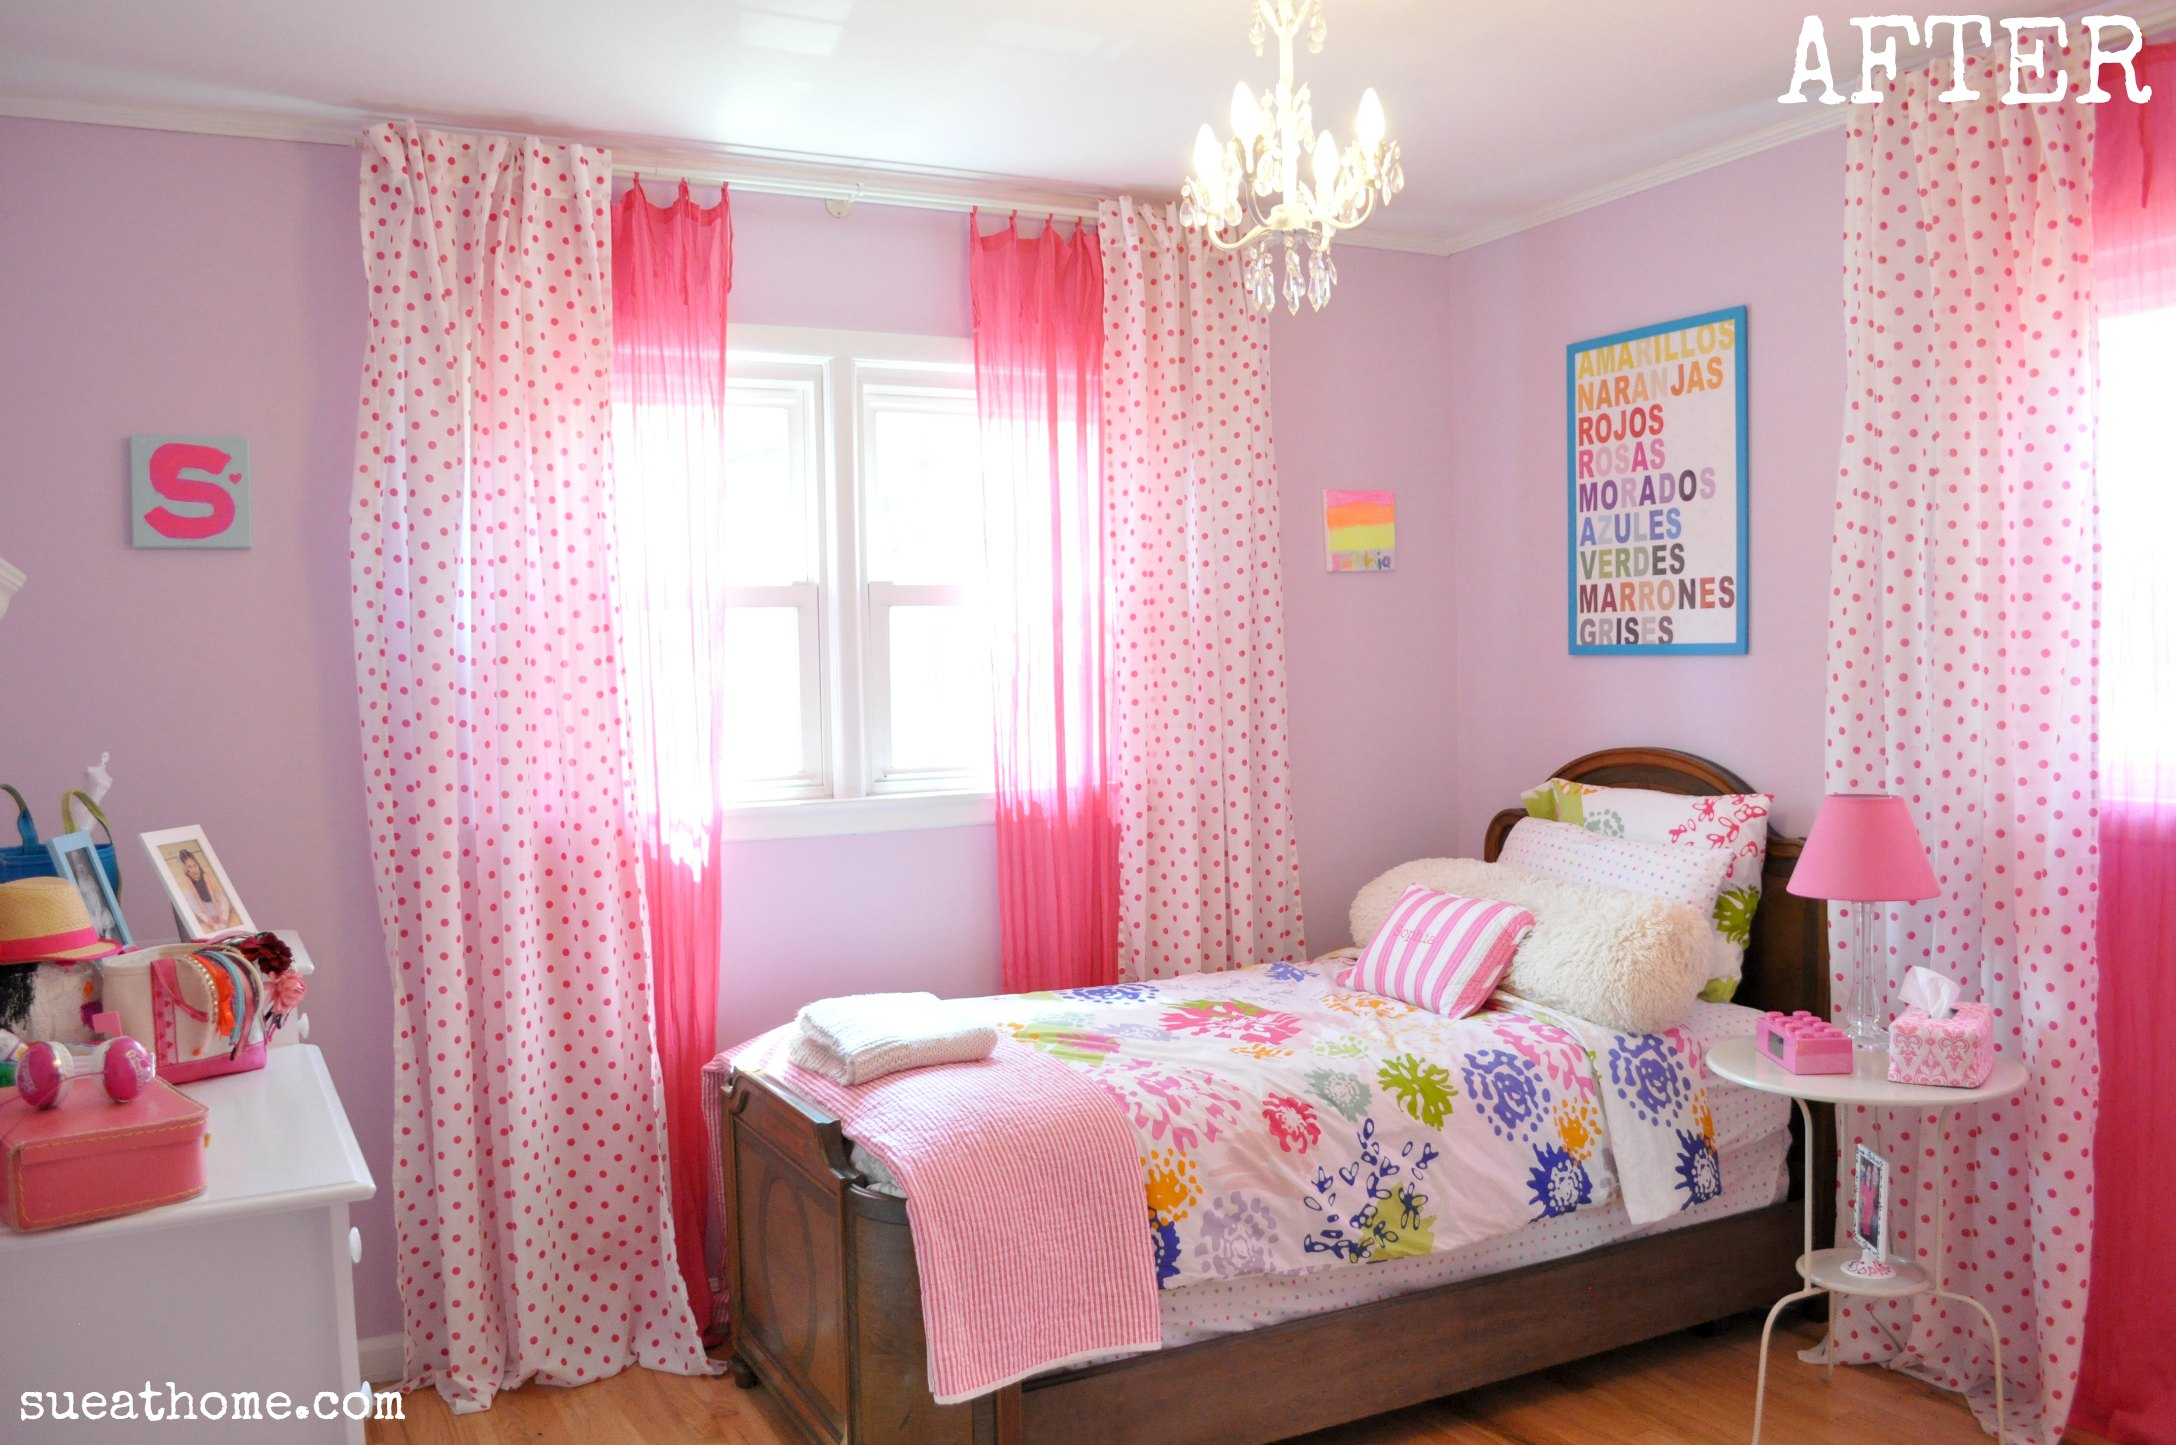 http://www.home-designing.com/wp-content/uploads/2013/02/3-preteen-girls-bedroom-16.jpeg